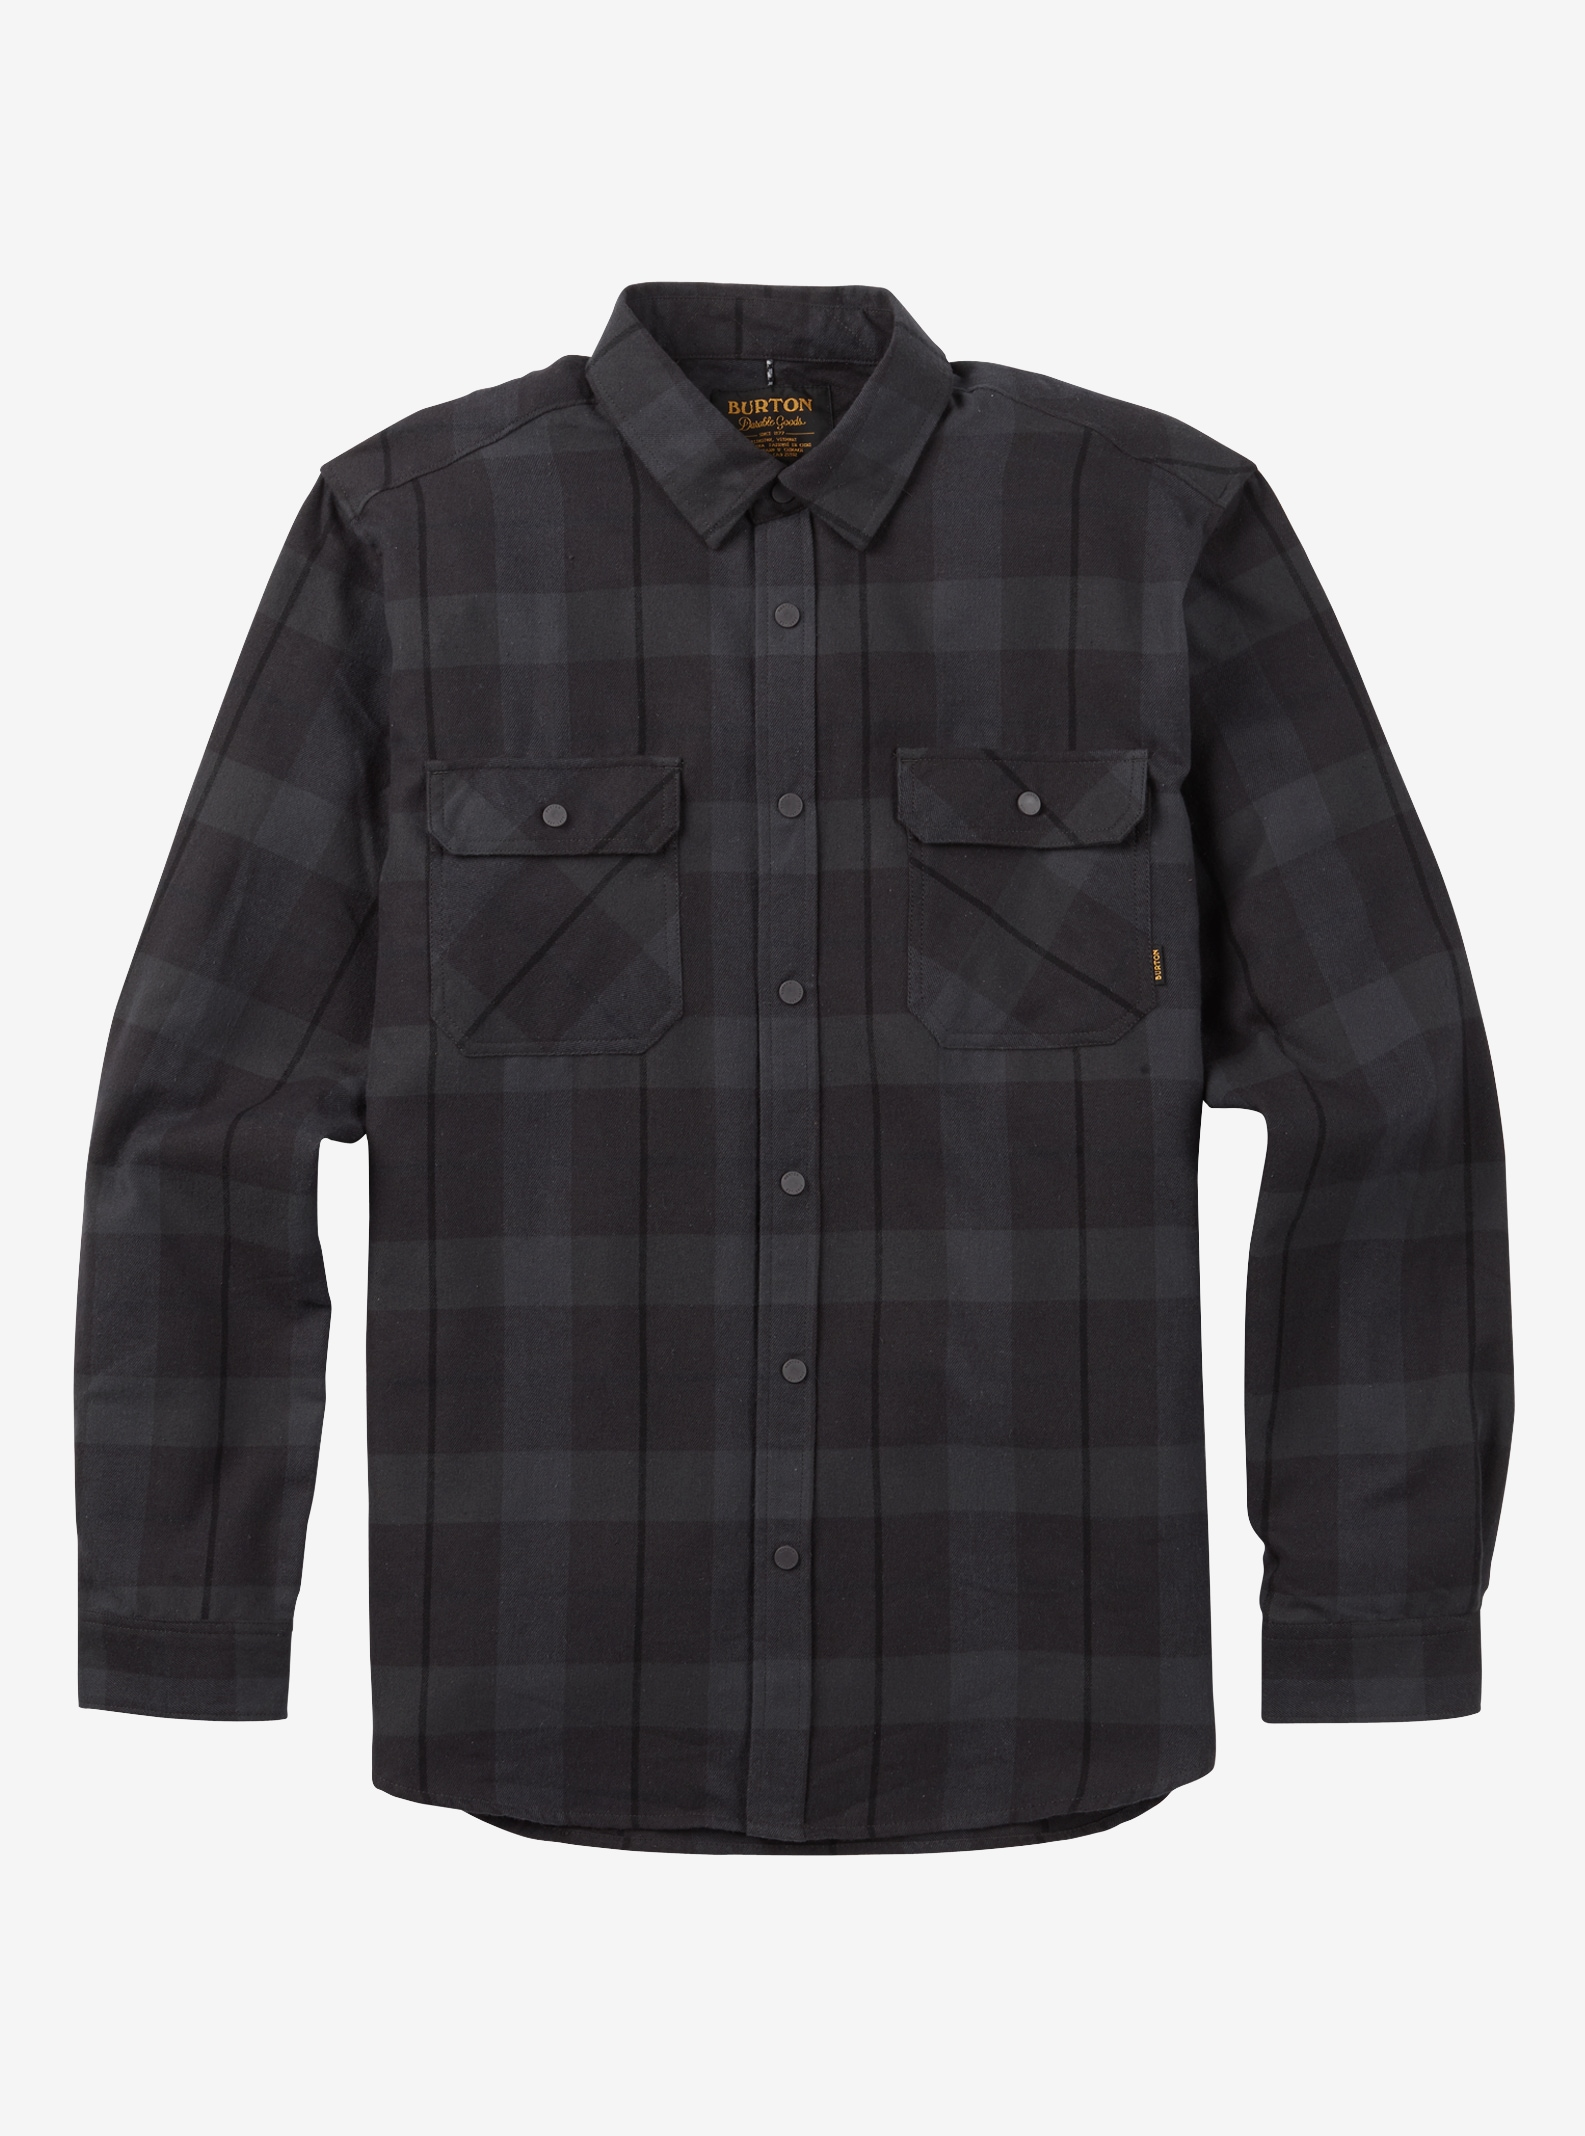 Men's Burton Brighton Tech Flannel shown in True Black Boxelder Plaid